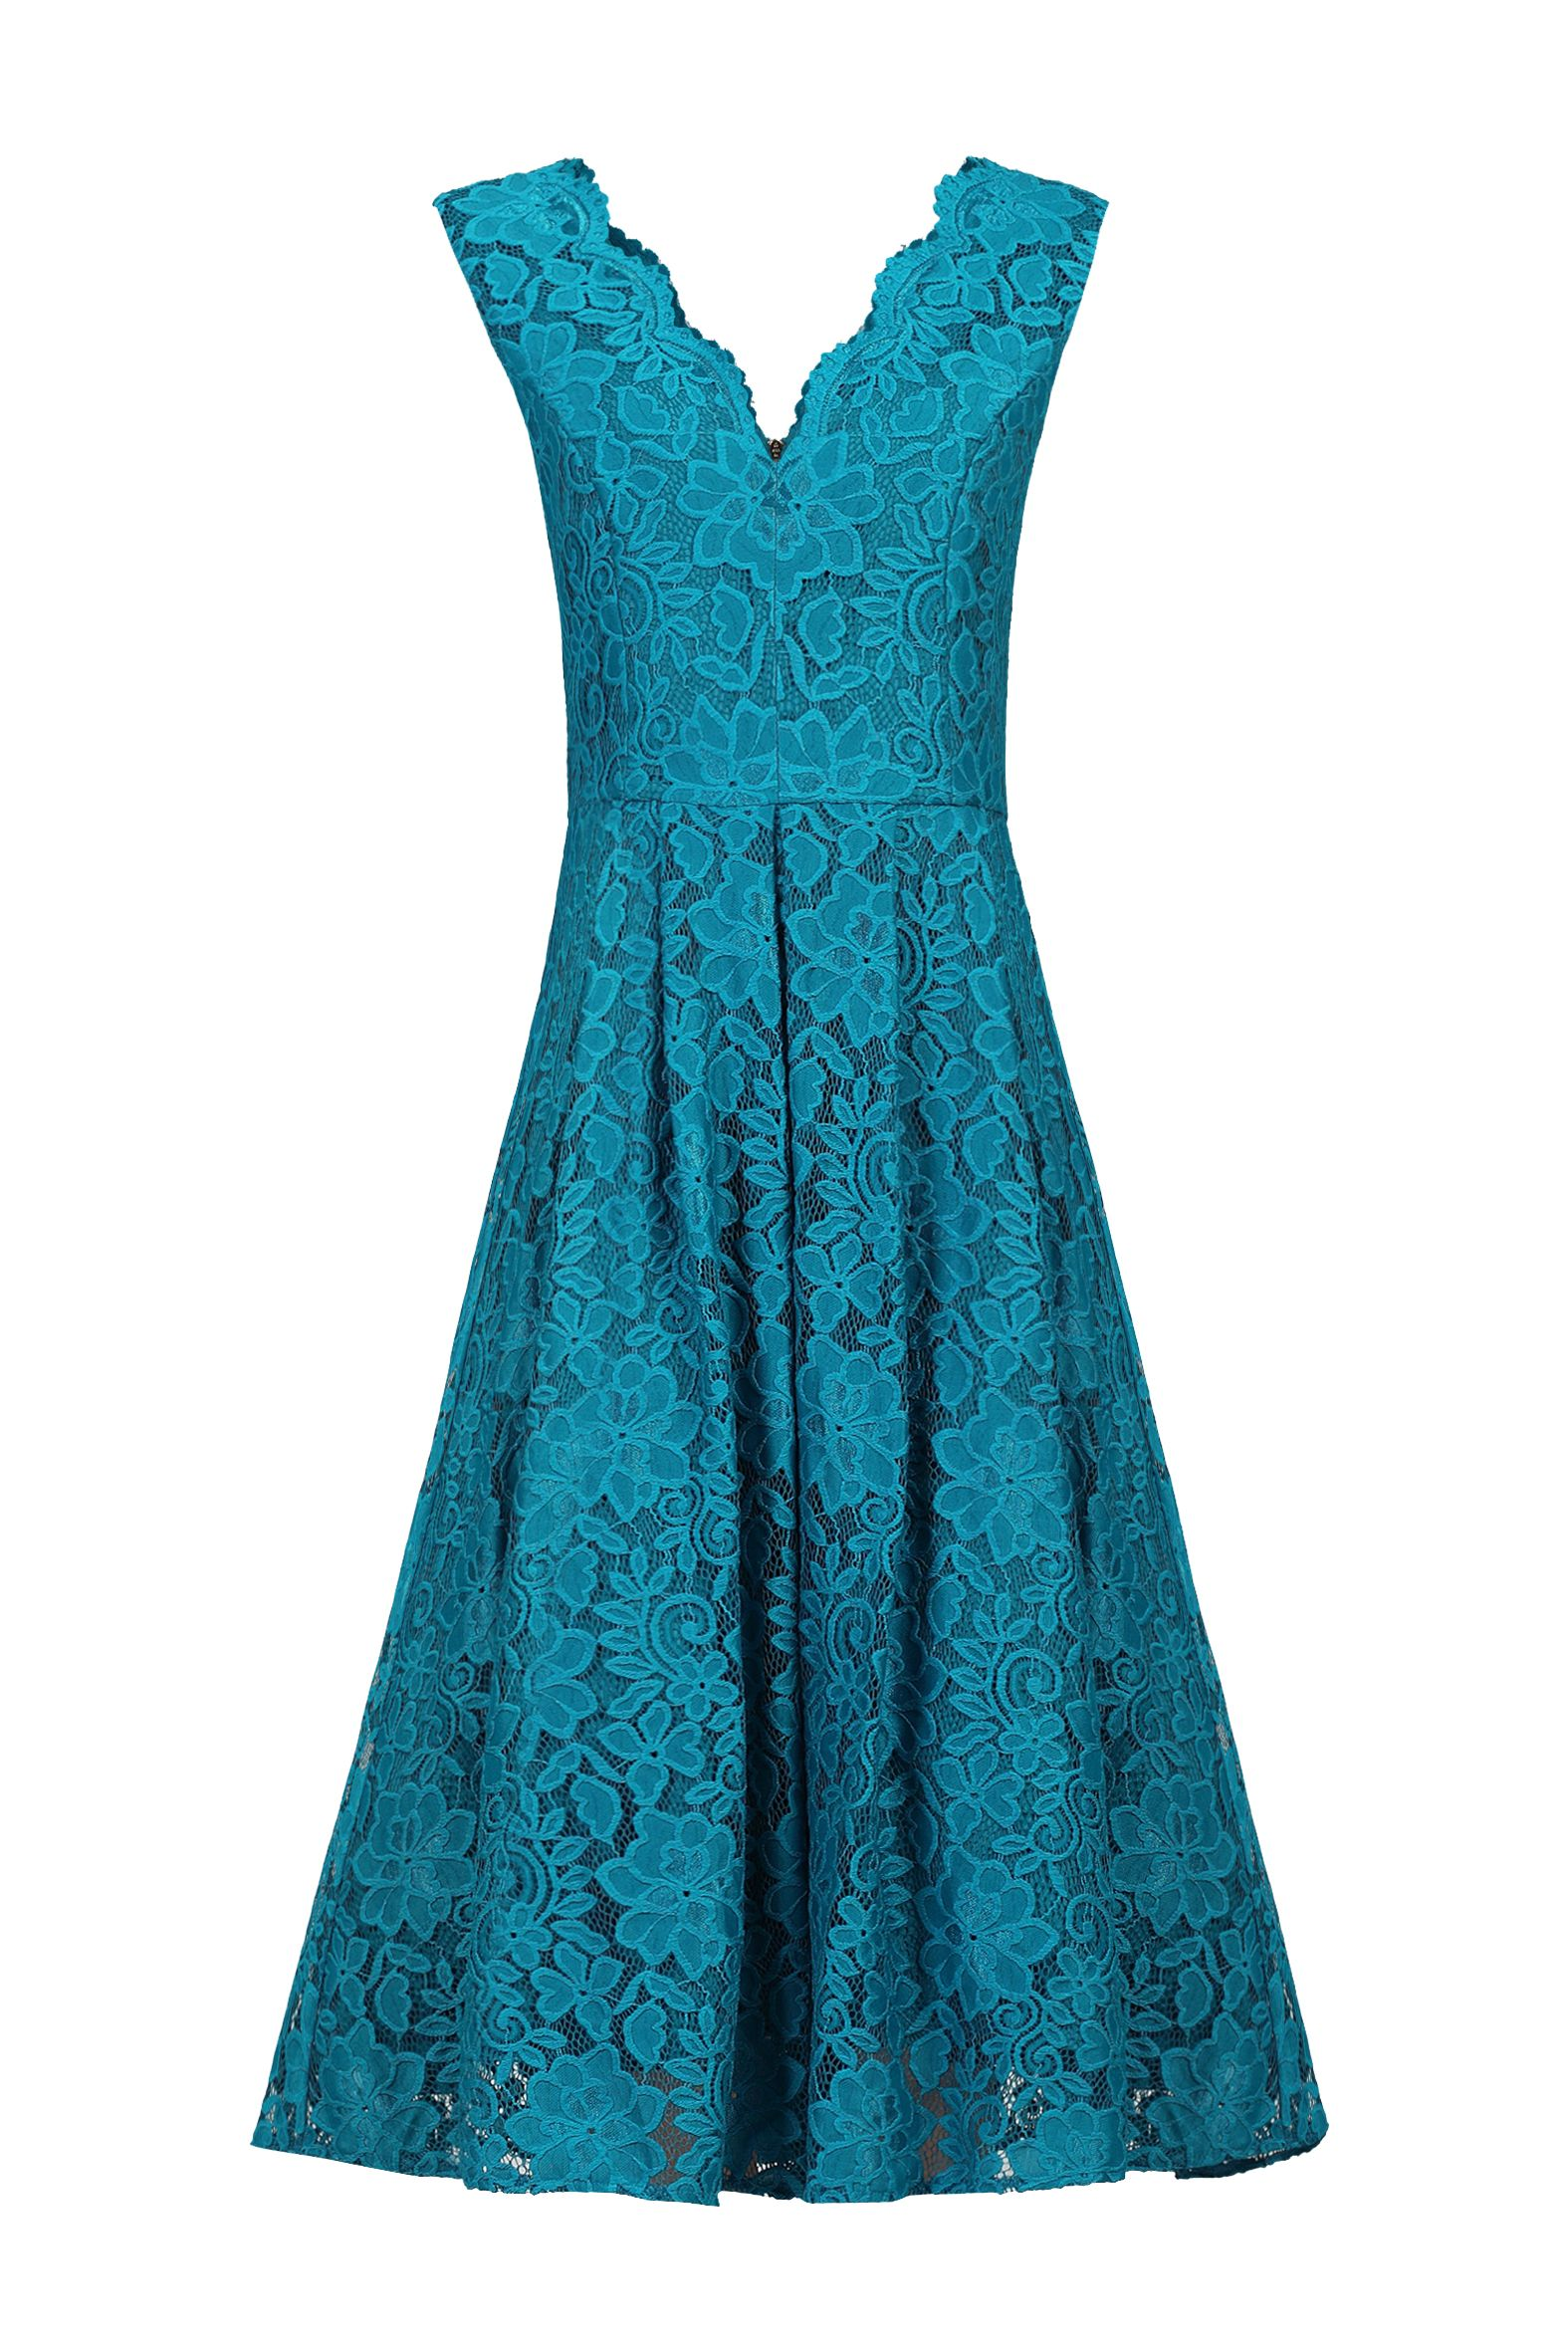 Jolie Moi Scalloped V Neck Pleated Prom Dress, Teal